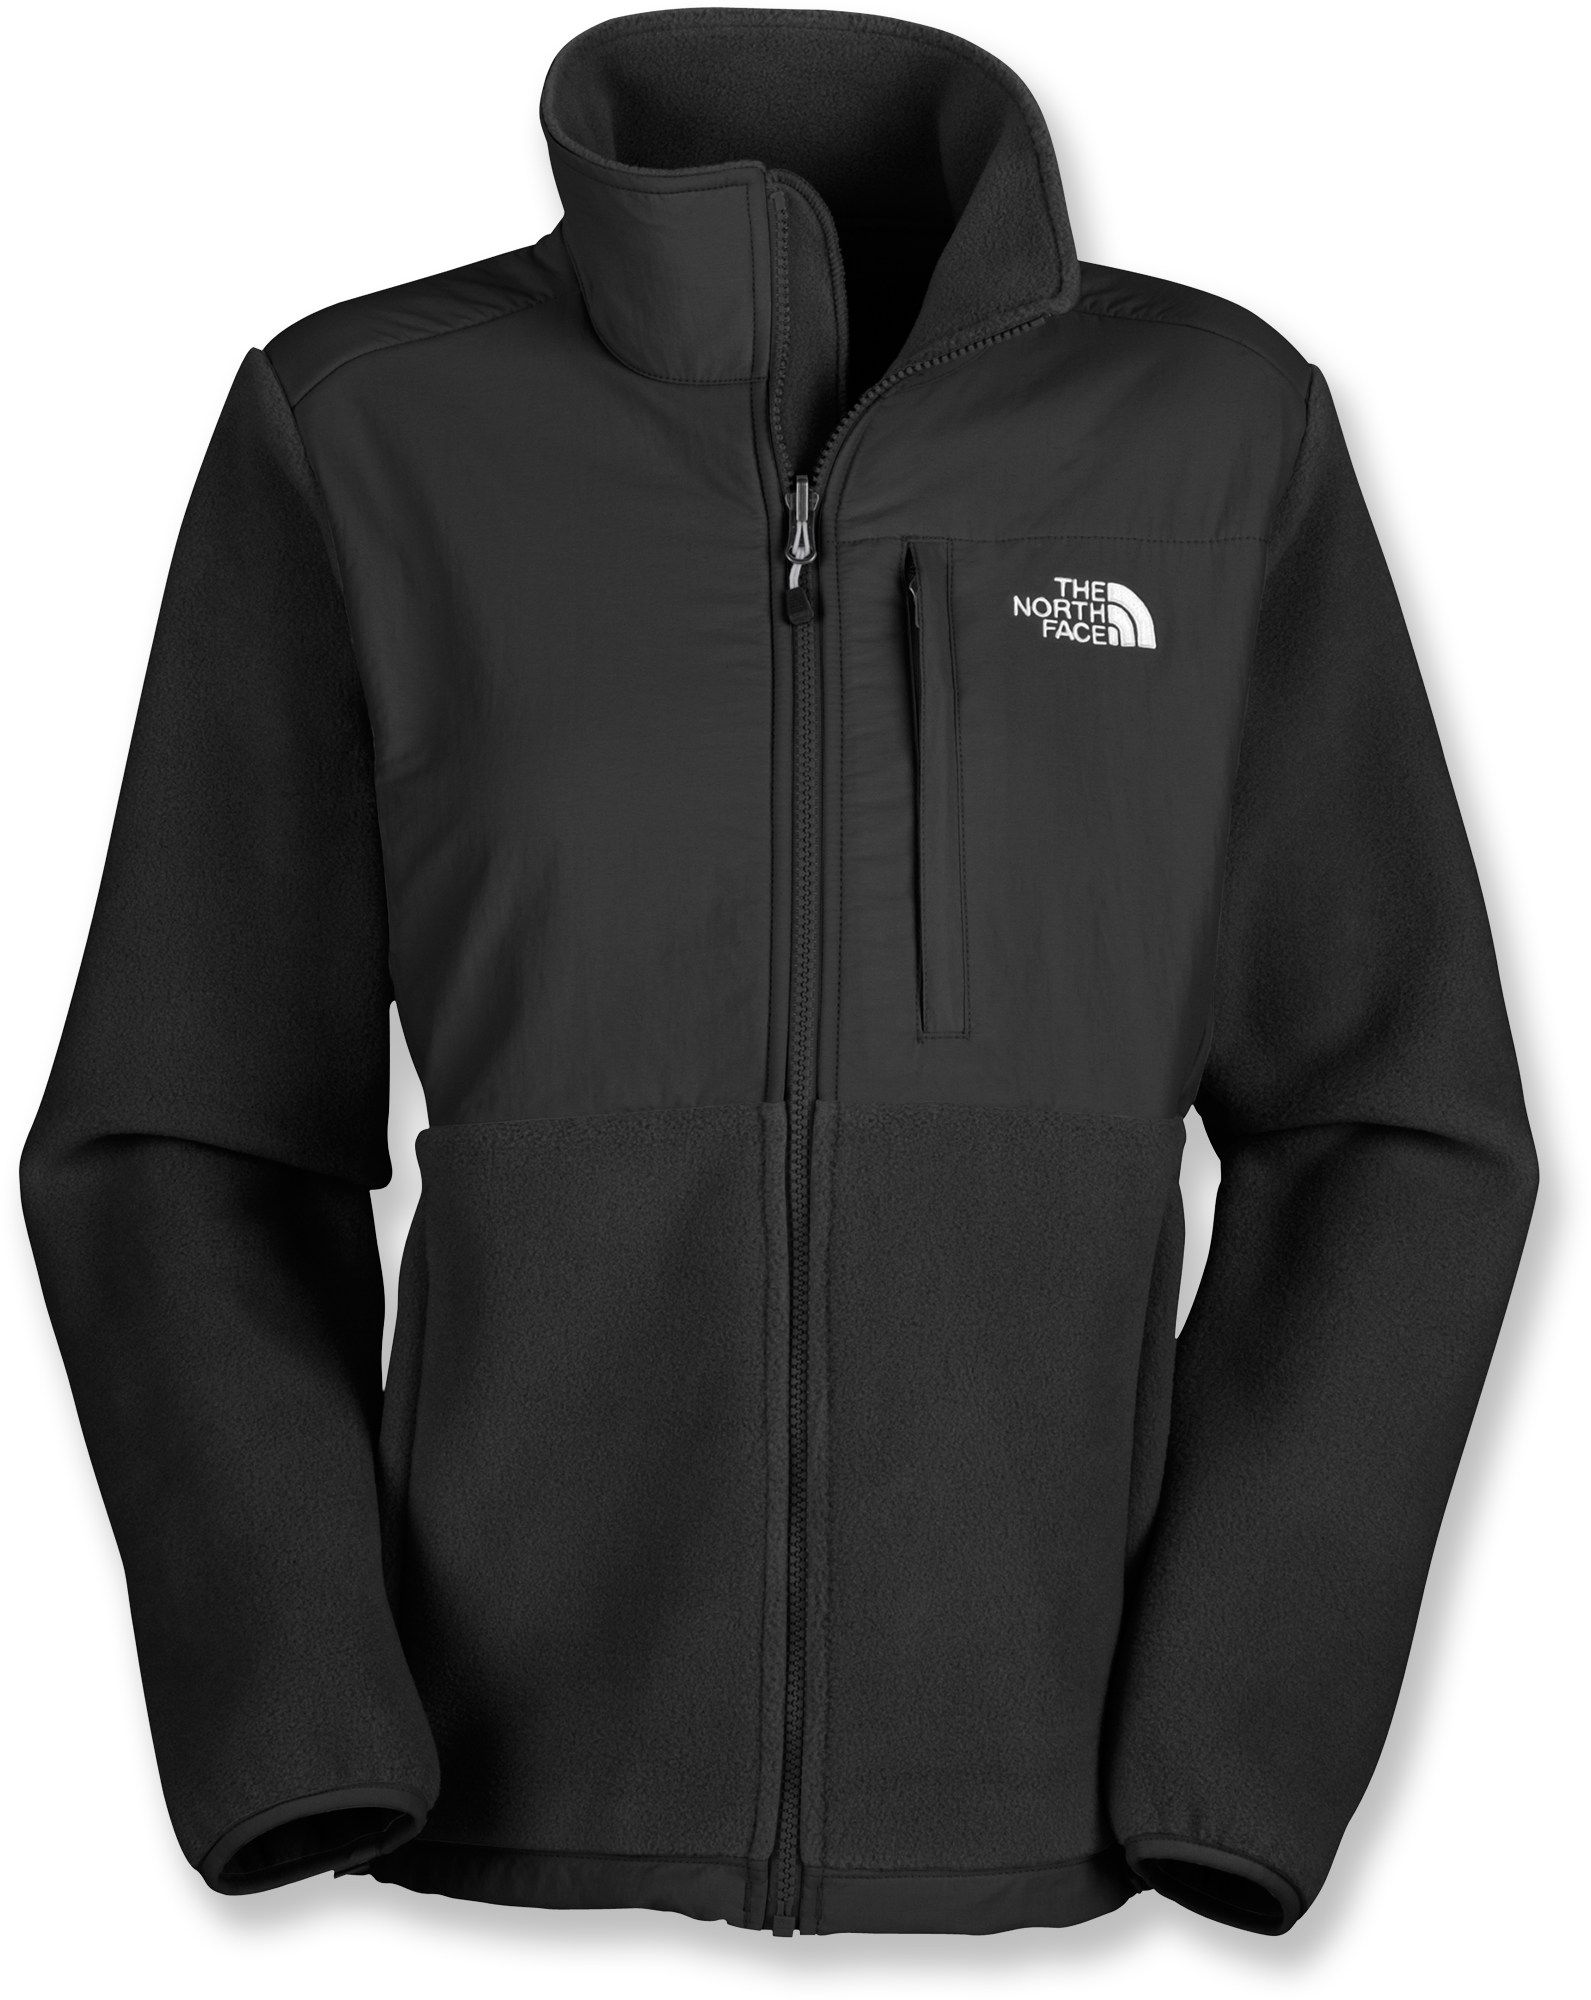 The North Face Denali Fleece Jacket - Women s - REI (All Black ... bec0885443f2